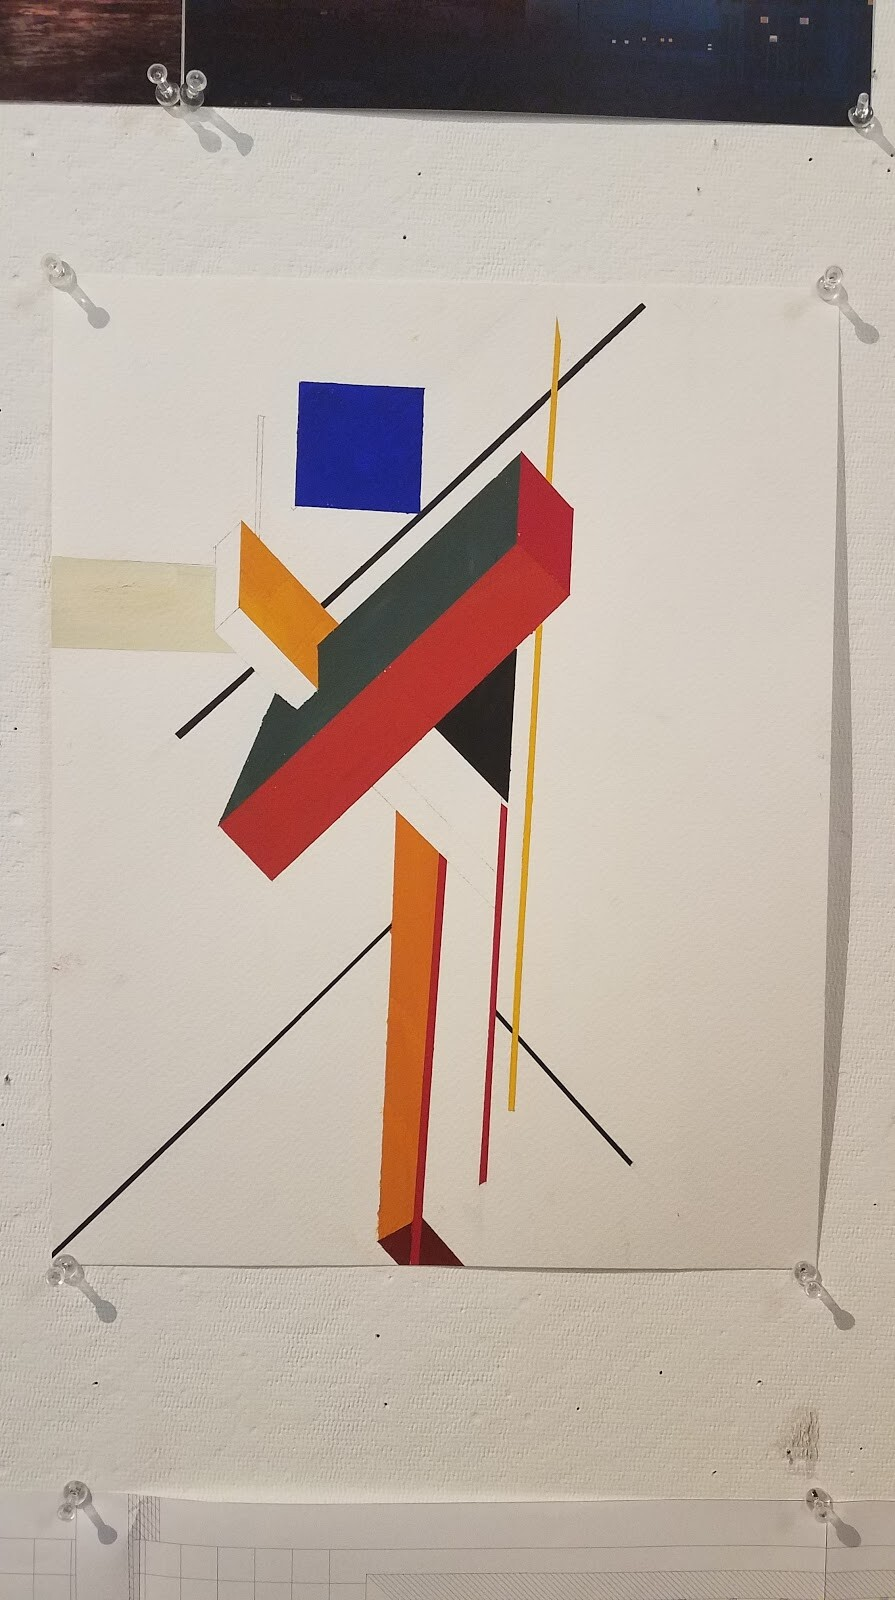 Architecton Paint Study 1 - Studying of principles of EL LISSITZKY & PROUNS